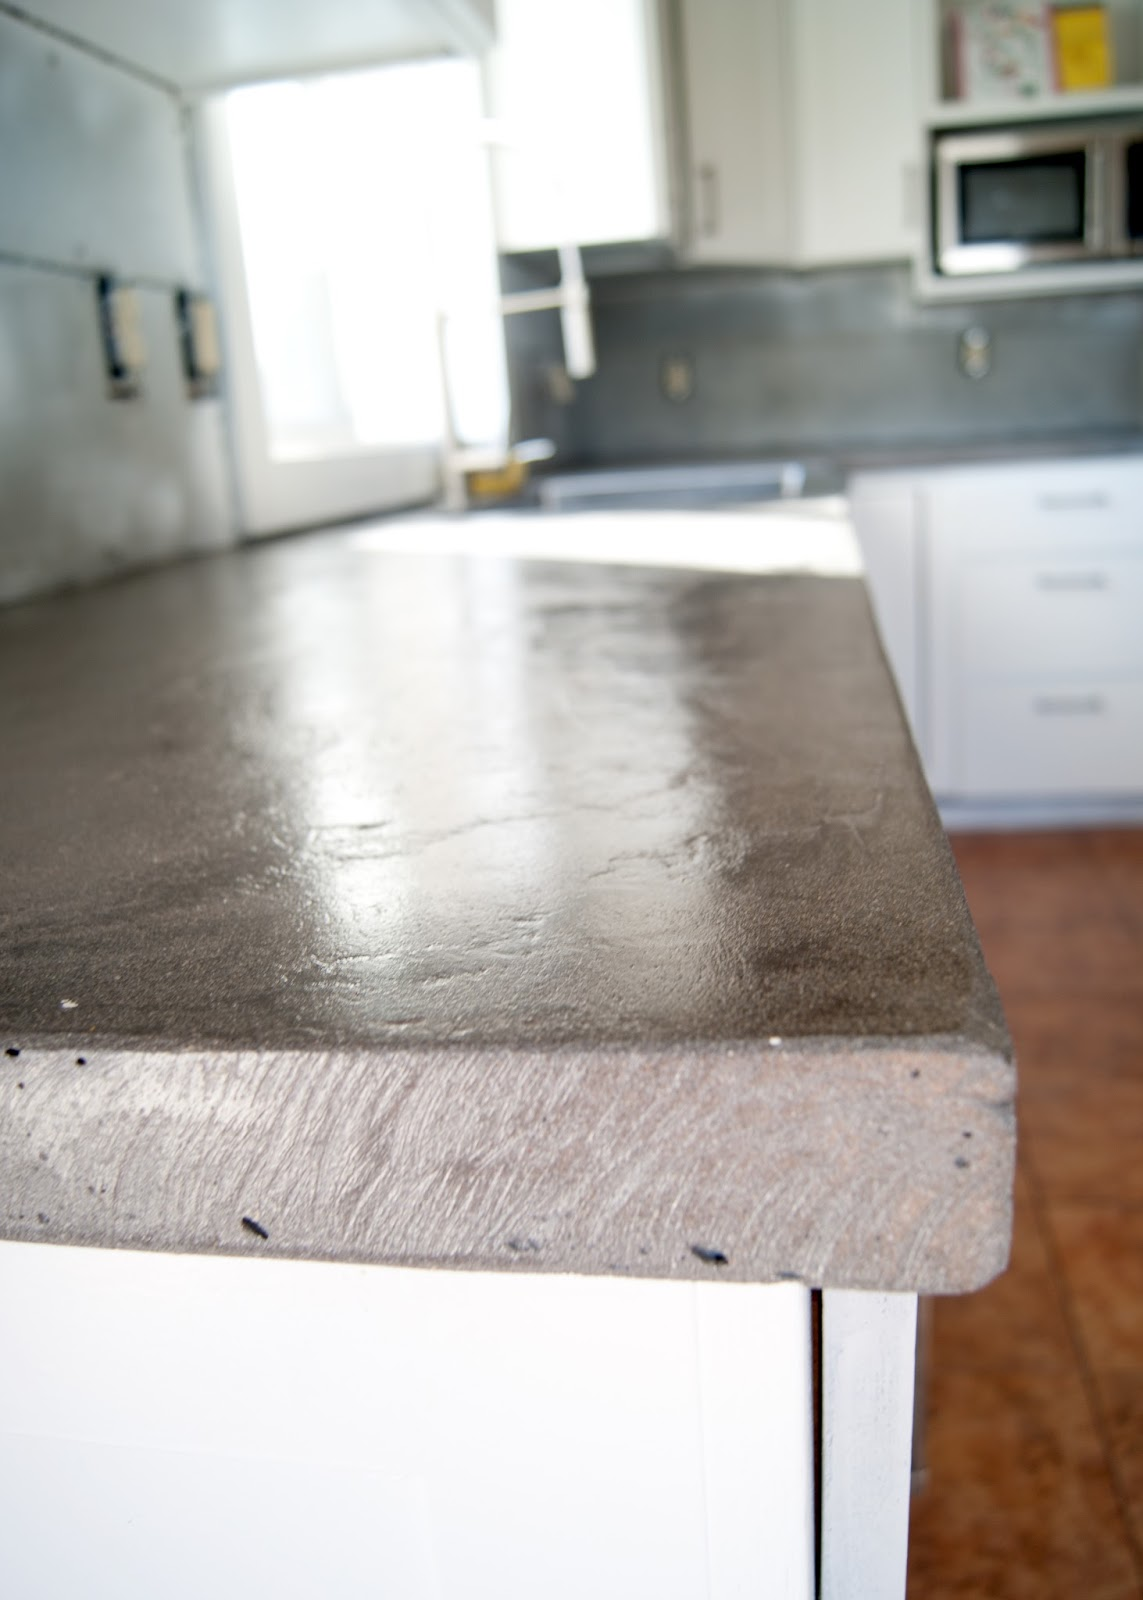 How To Fix Formica Countertops Diy Concrete Counters Poured Over Laminate Averie Lane